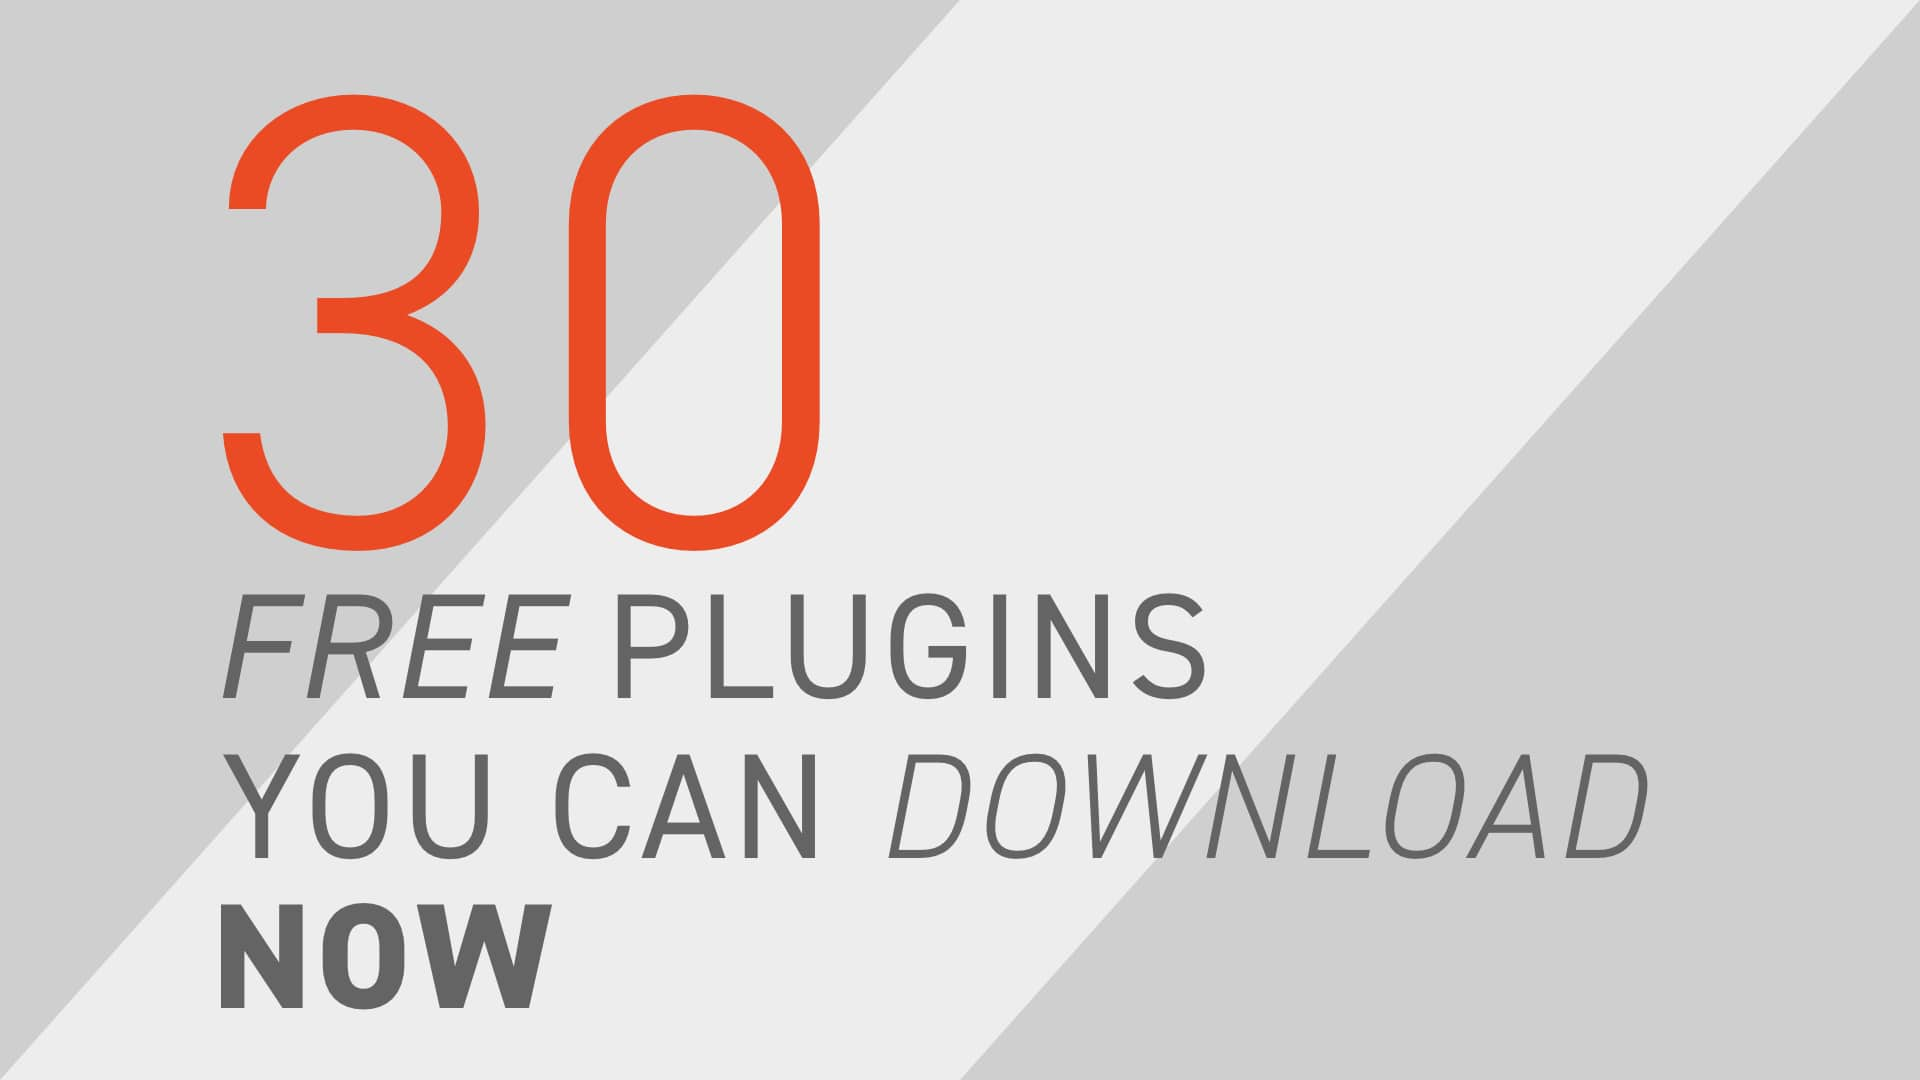 Our top 30 free plugins you can download now!